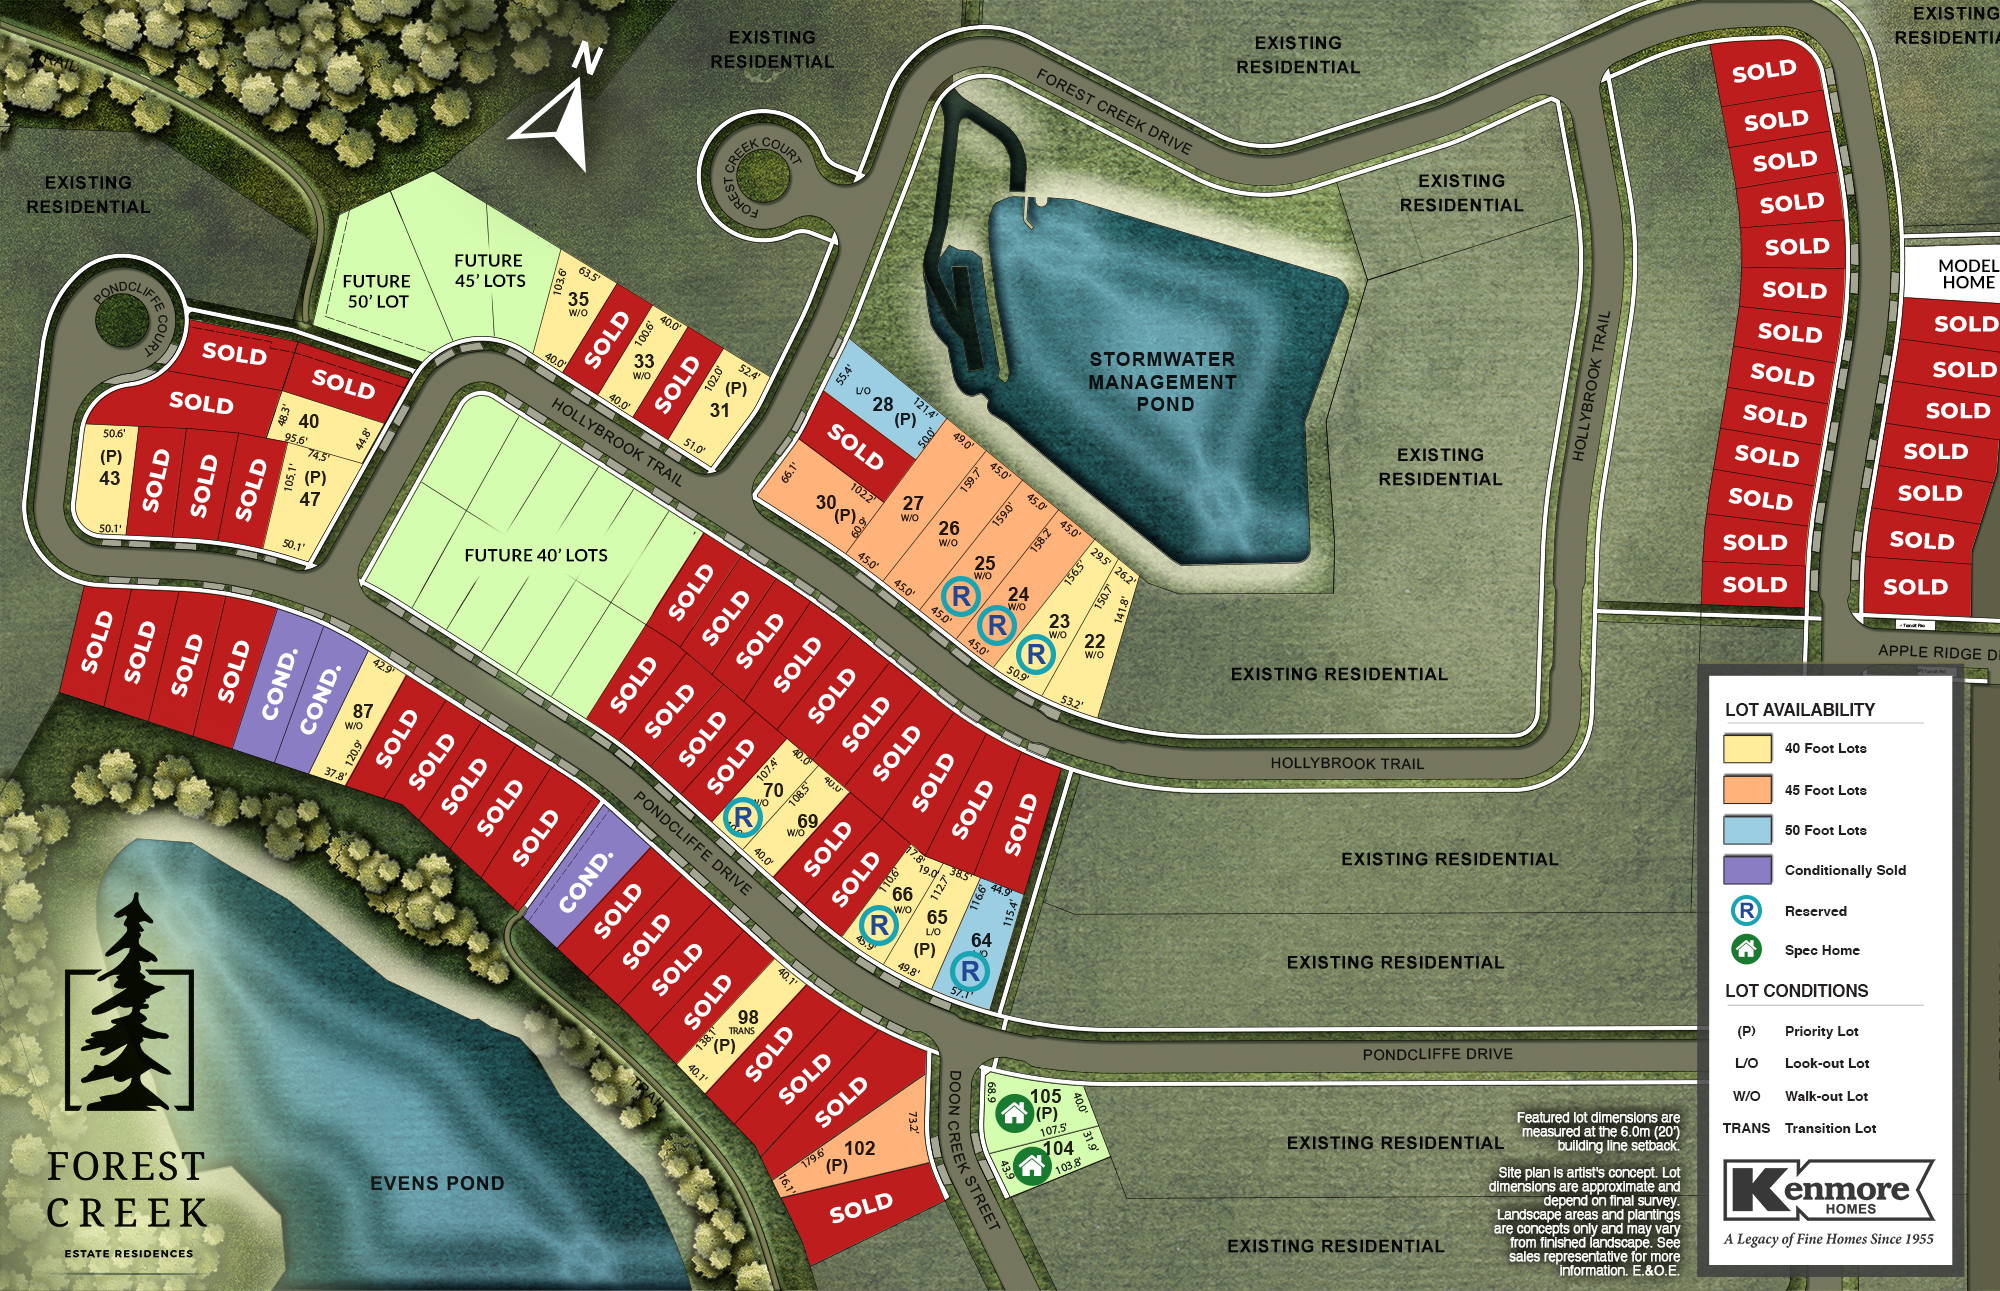 Kenmore Forest Creek site plan